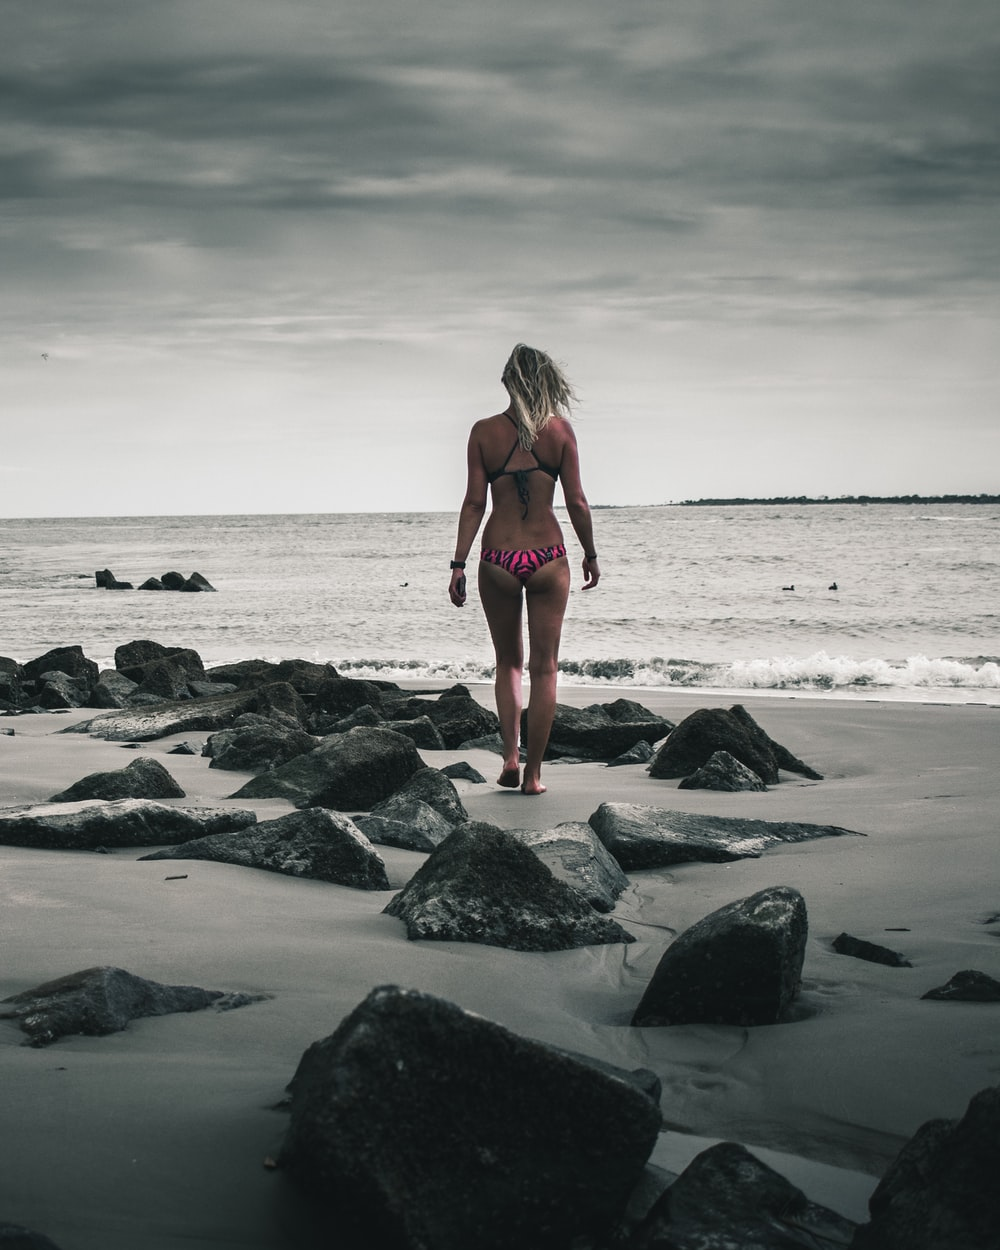 woman in pink bikini standing in rocky beach